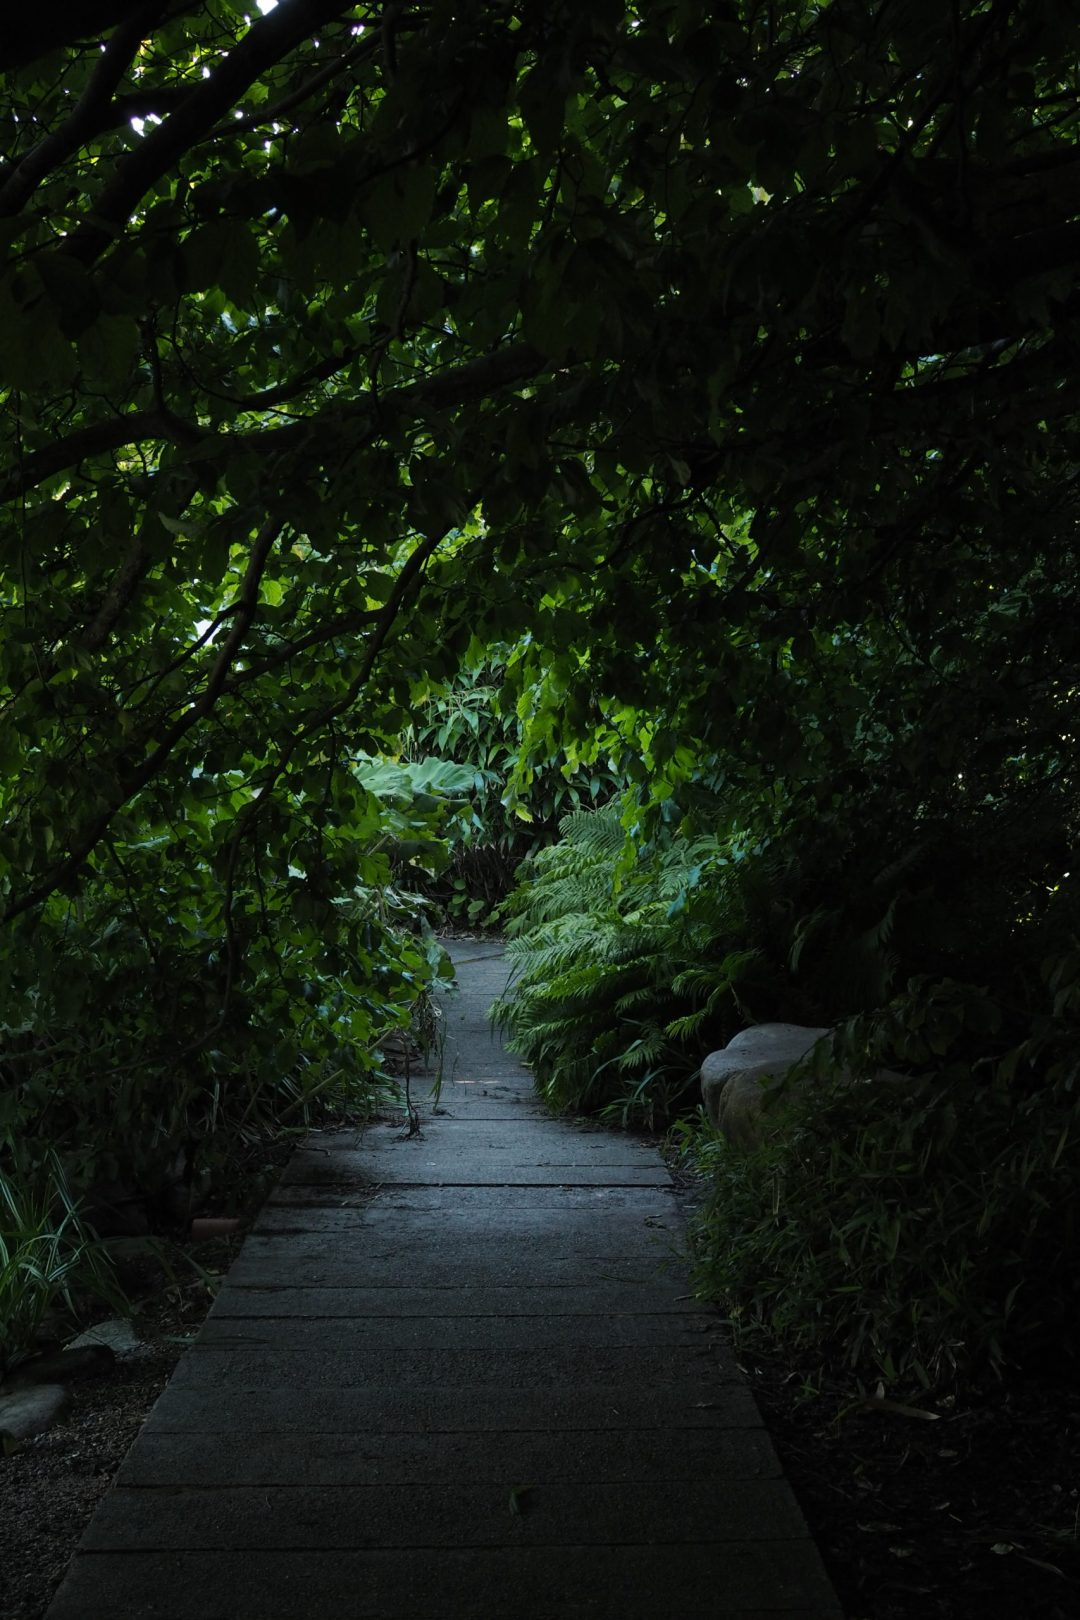 A green path, botanical gardens